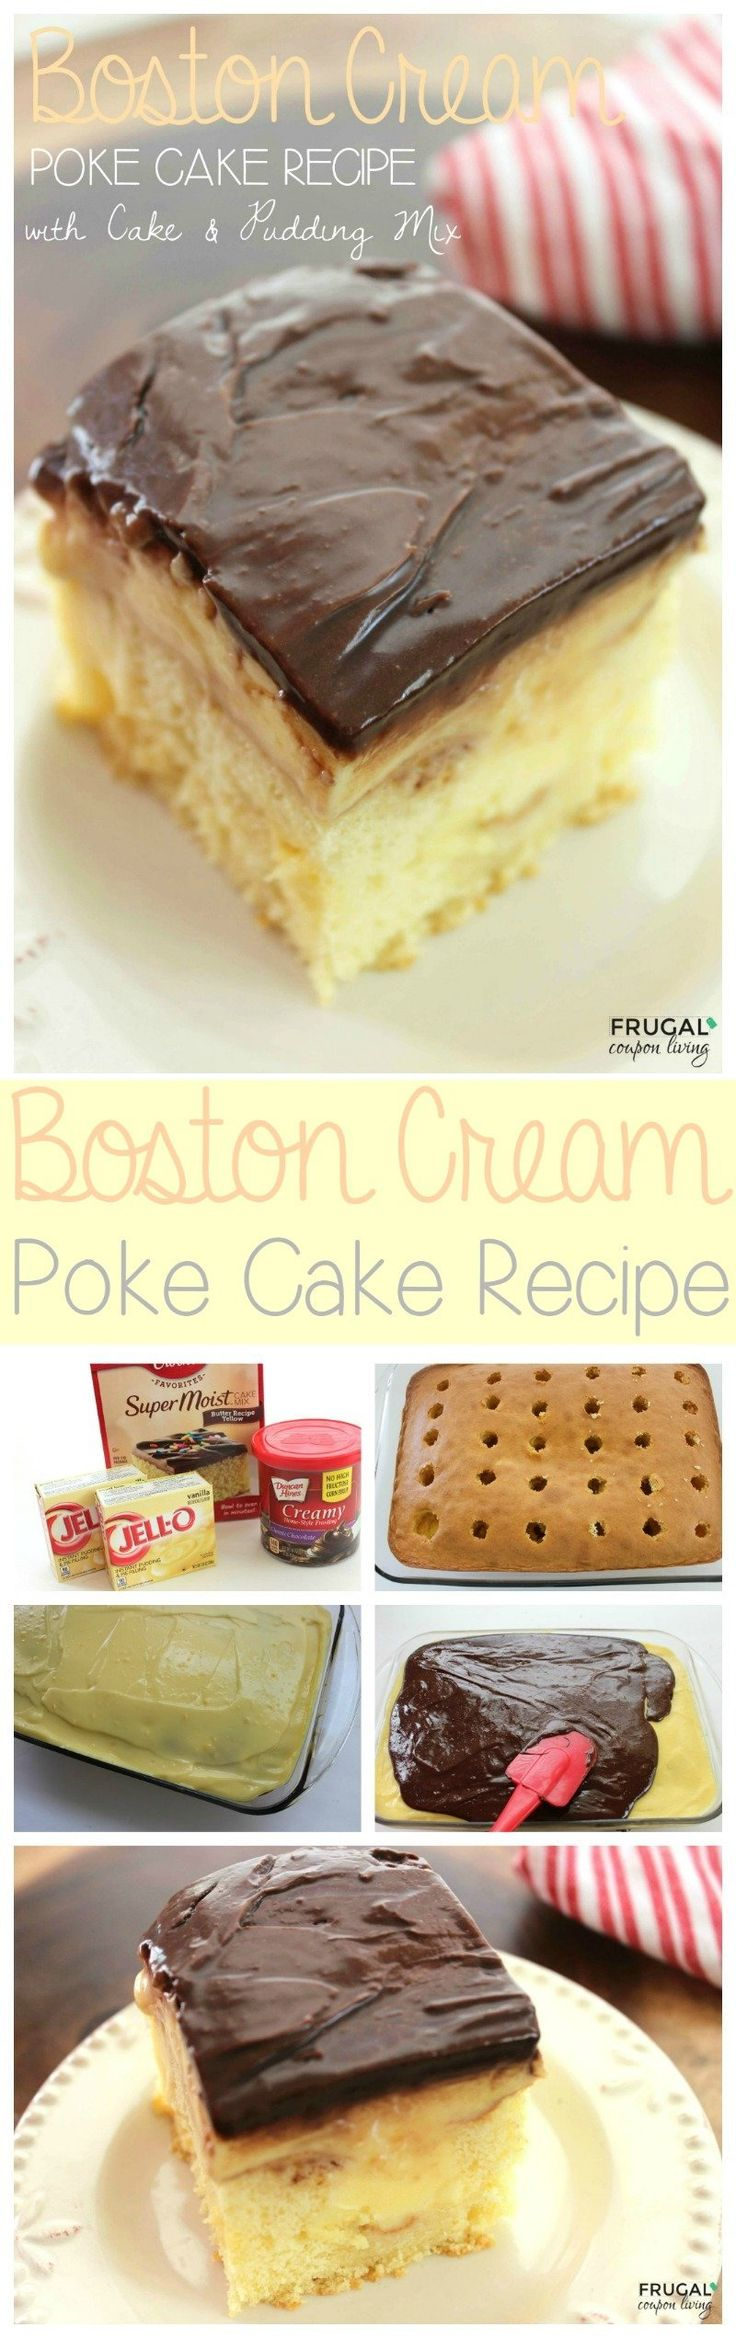 Want to Add Extra Flavor to Your Cake? Poke Holes in It! Here Are 12 Poke Cake Recipes Your Family Will Love.